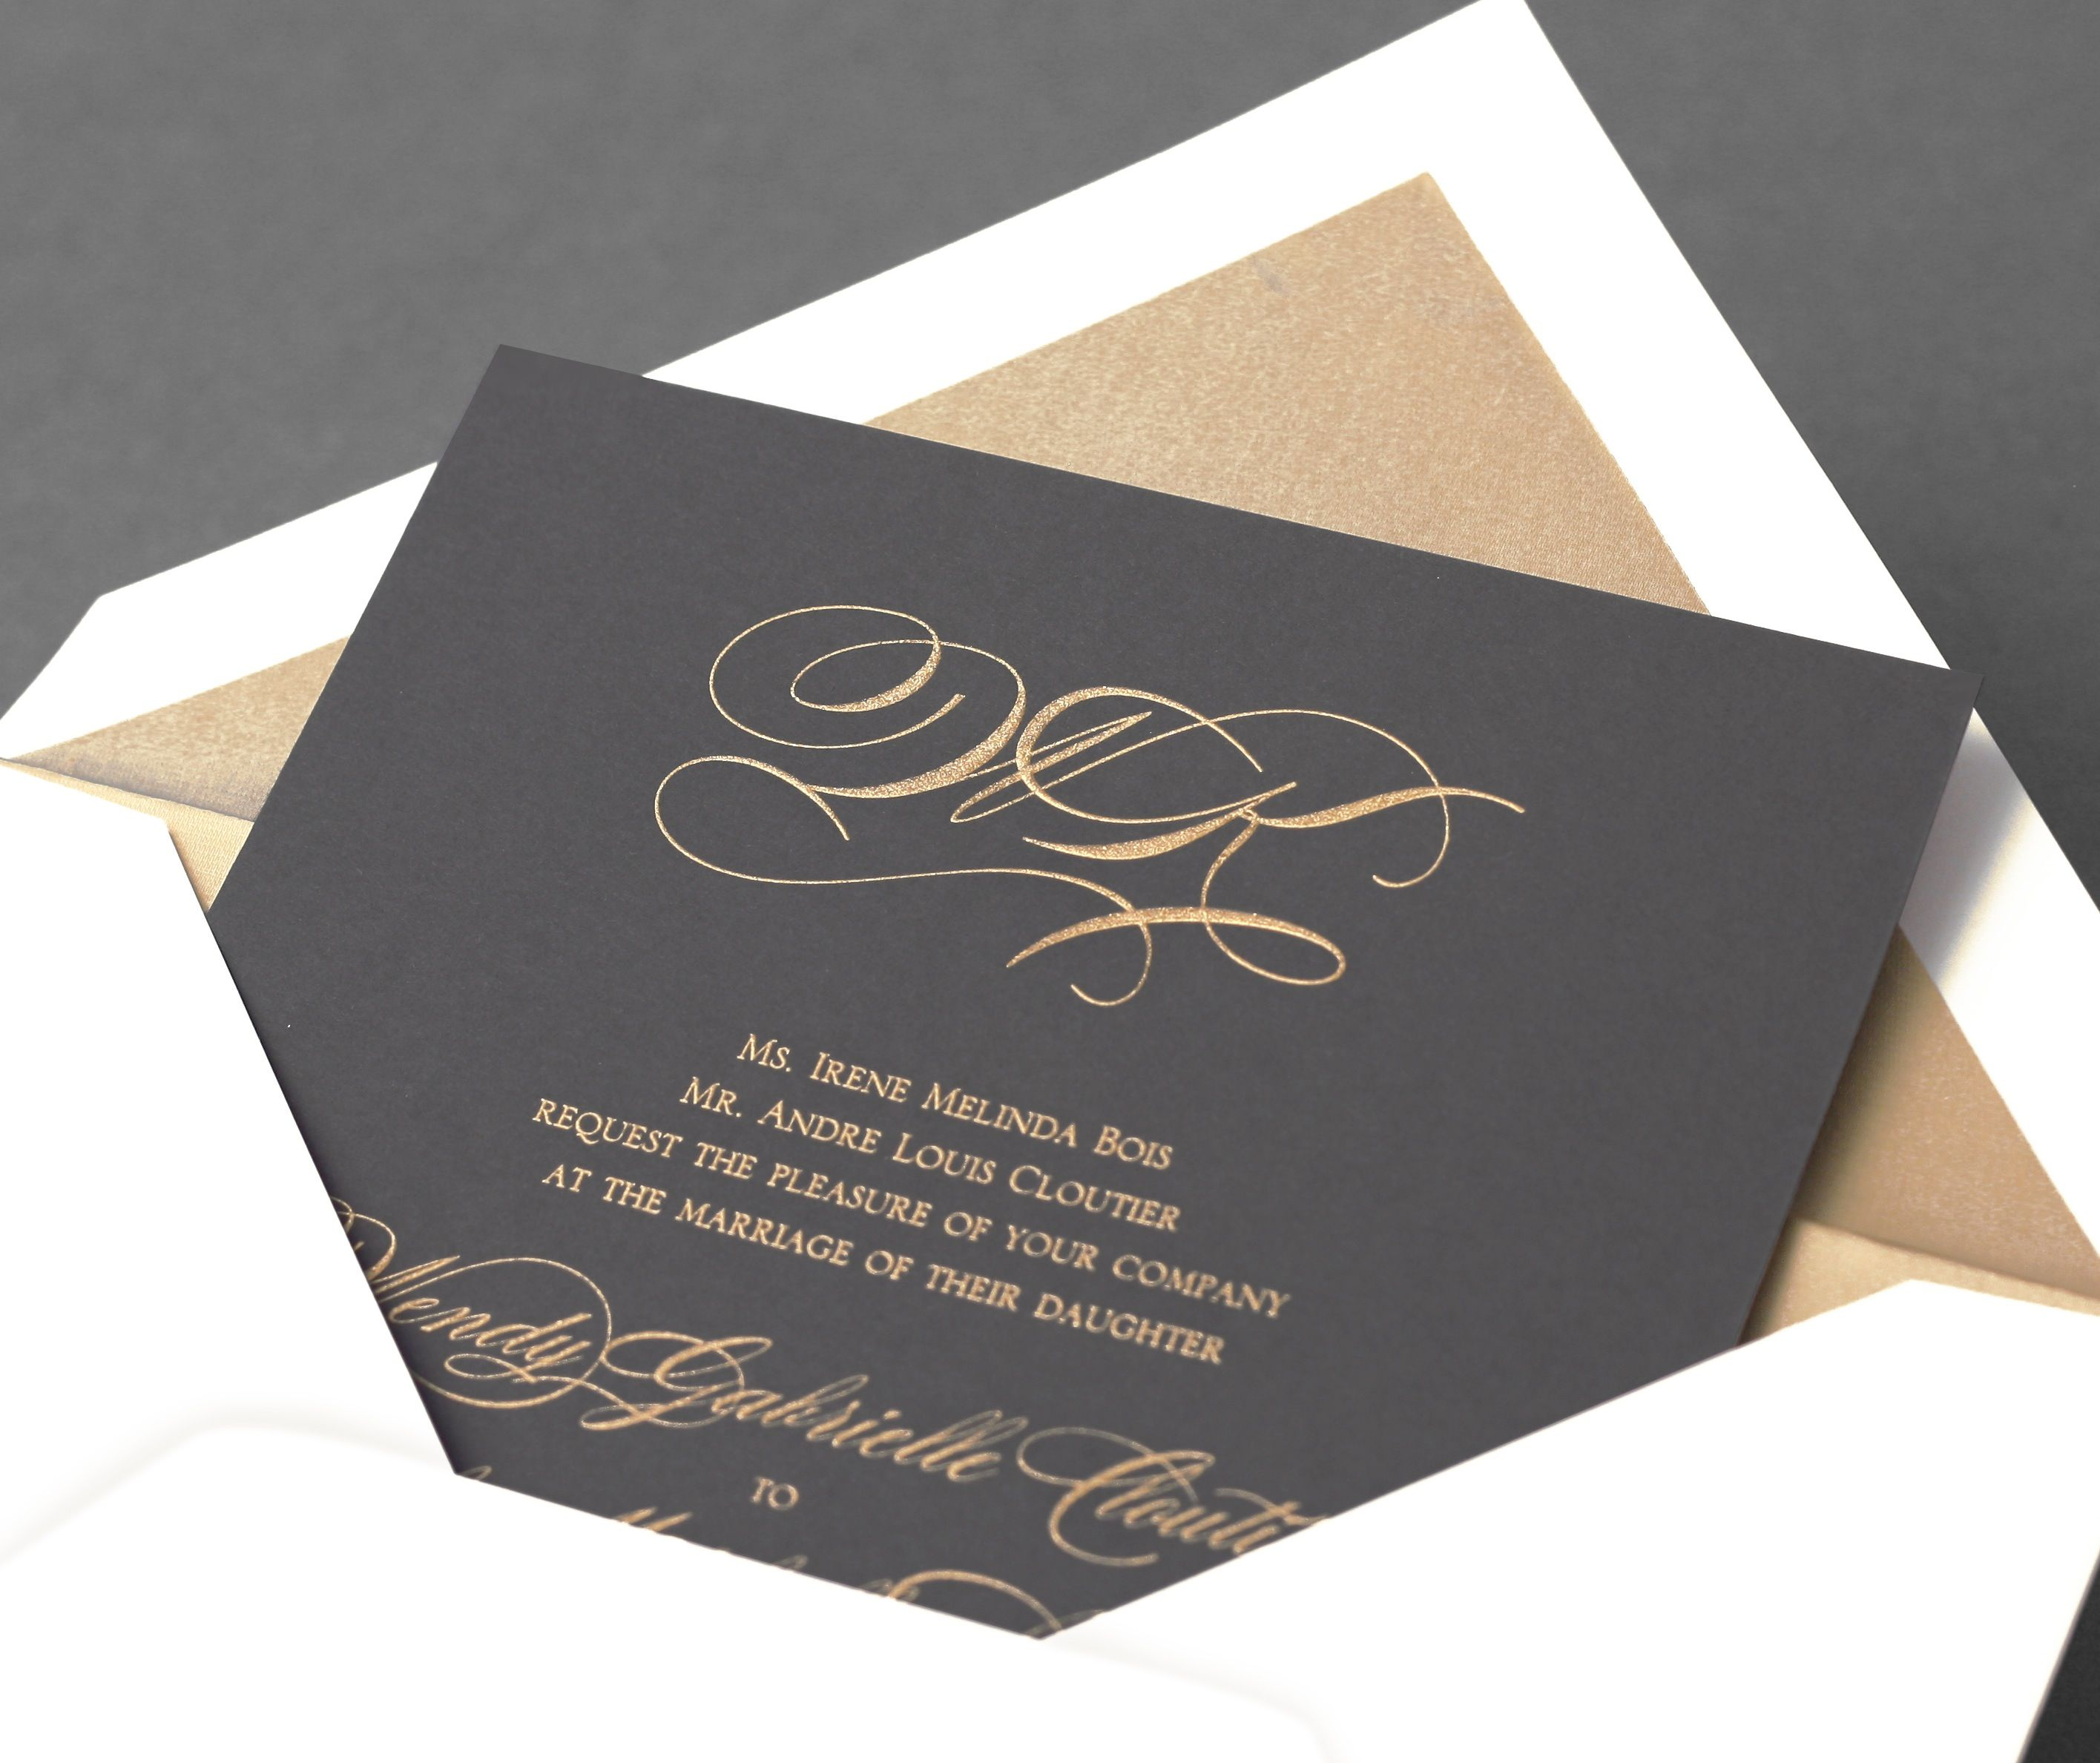 vera wang pewter wedding invitation with a gold monogram - Vera Wang Wedding Invitations